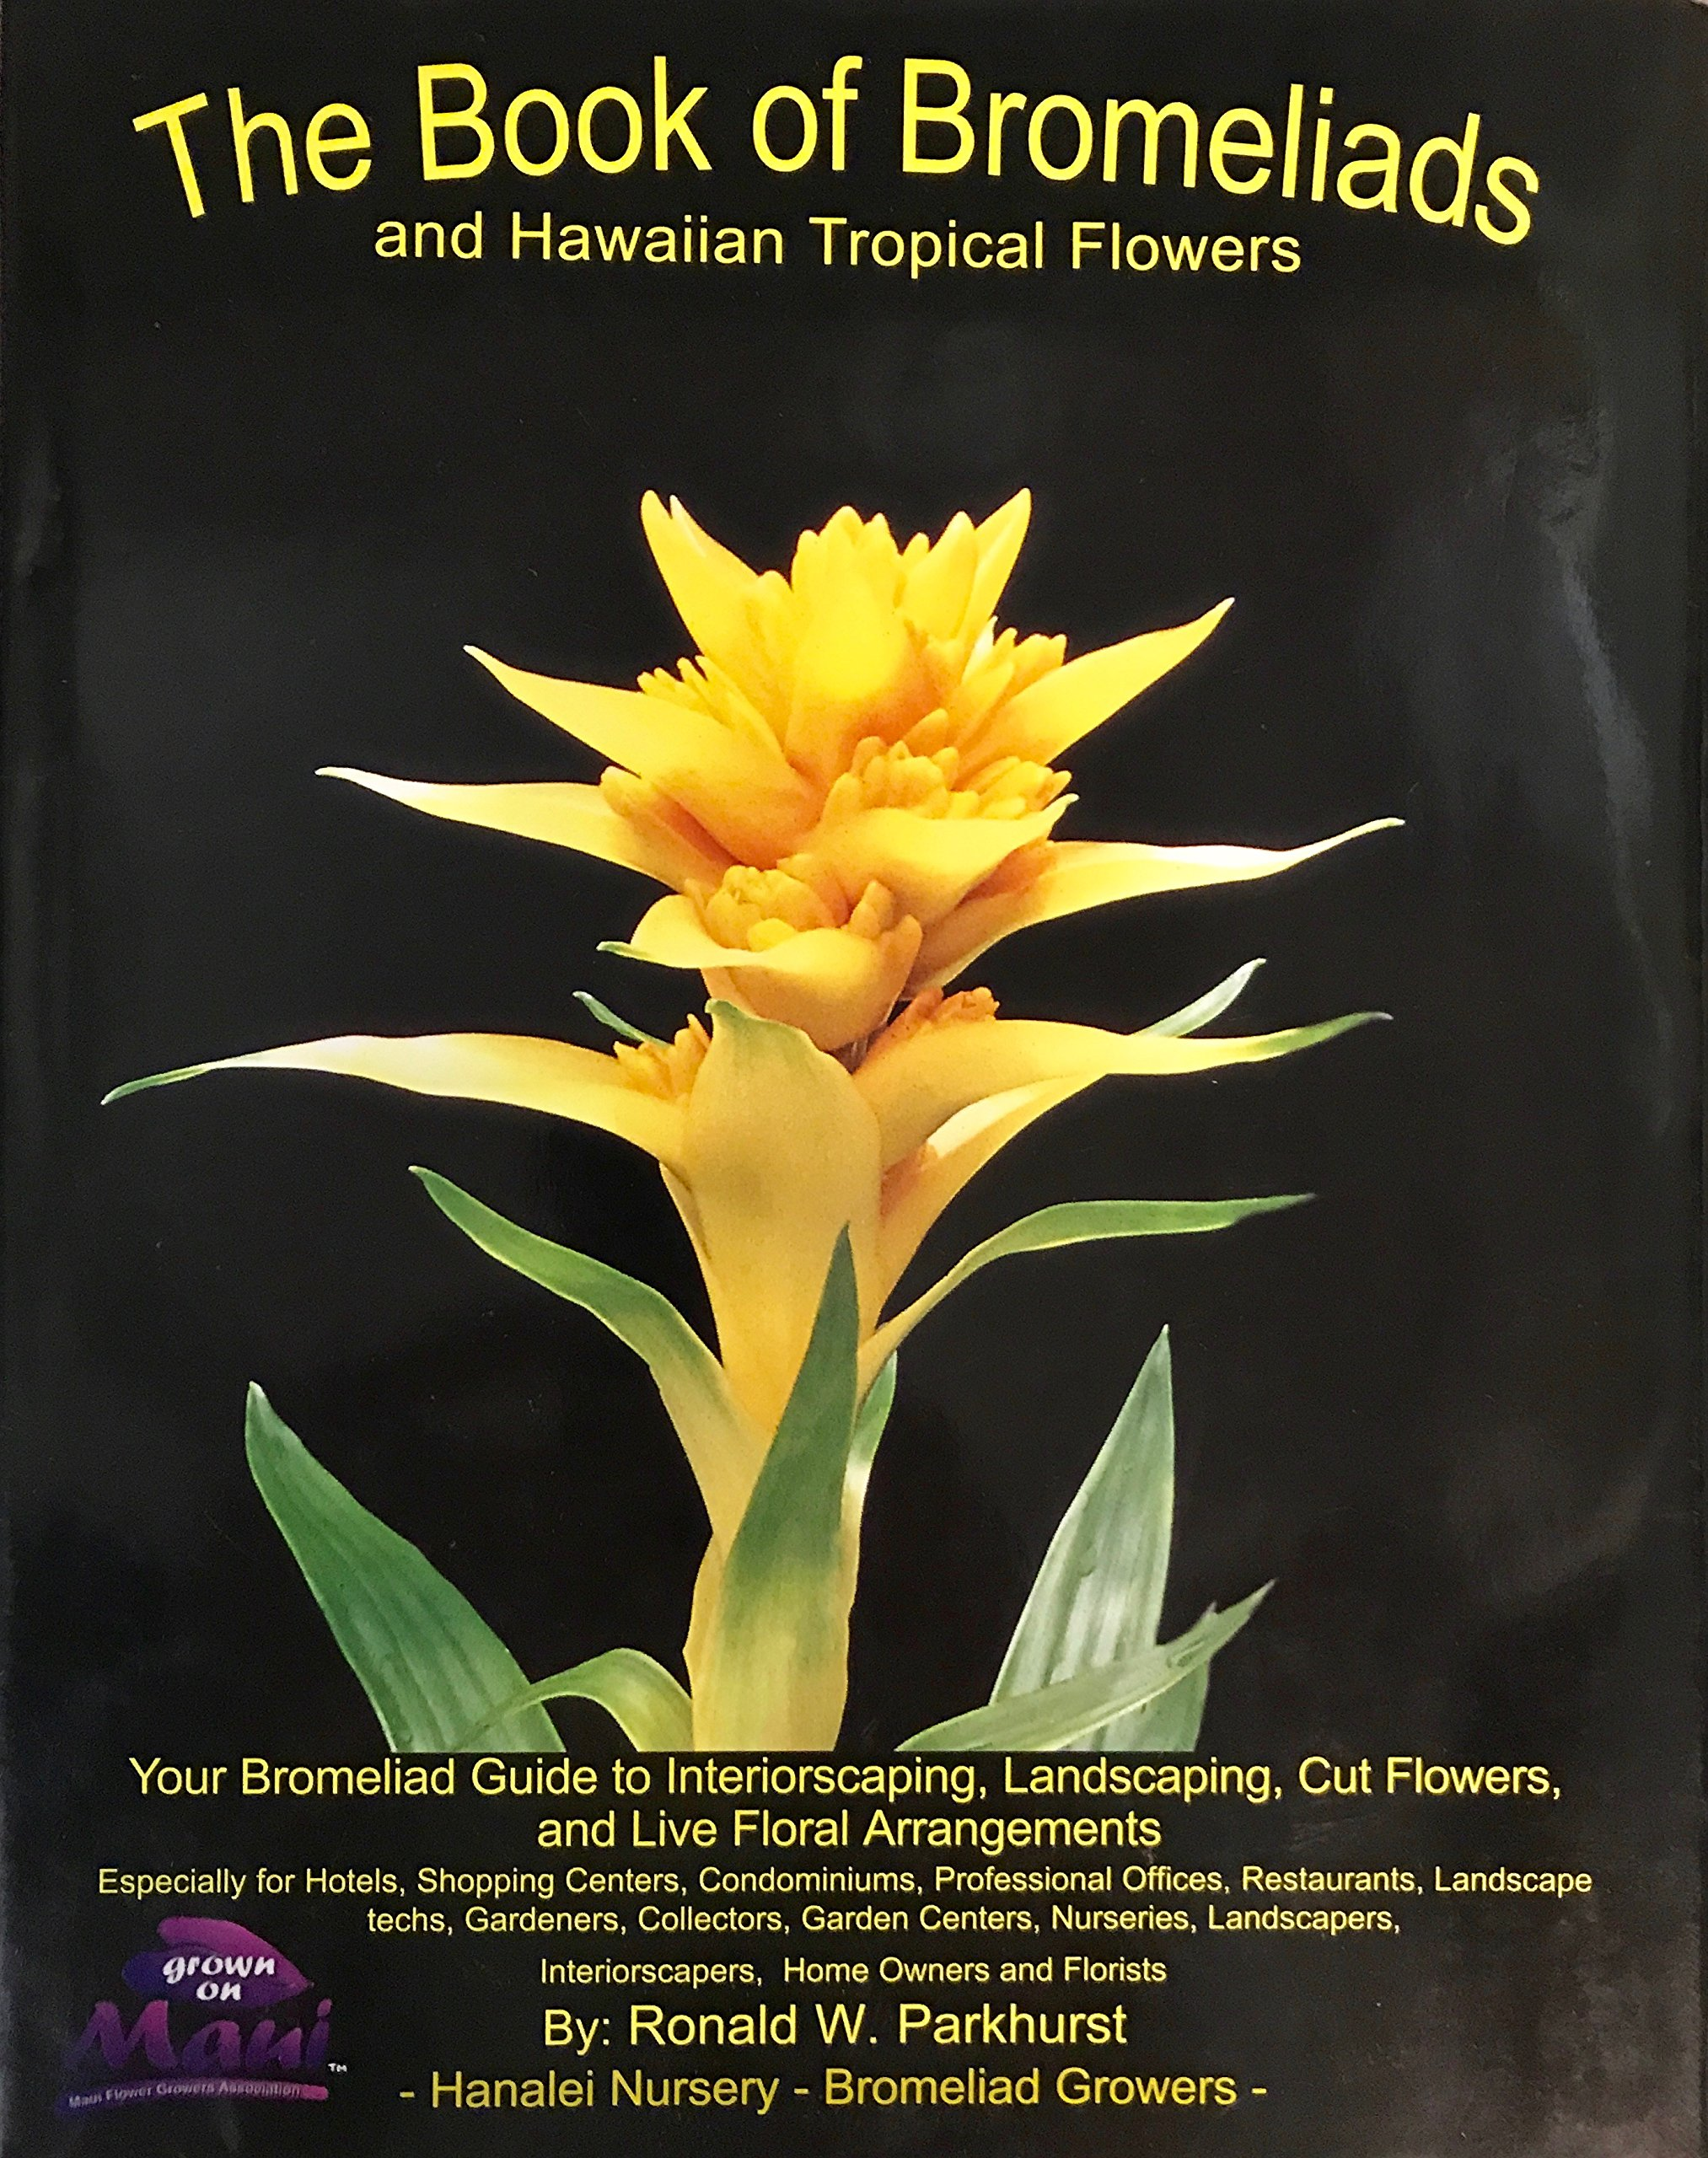 The book of bromeliads and hawaiian topical flowers your bromeliad the book of bromeliads and hawaiian topical flowers your bromeliad guide to interiorscaping landscaping cut flowers and live floral arrangements izmirmasajfo